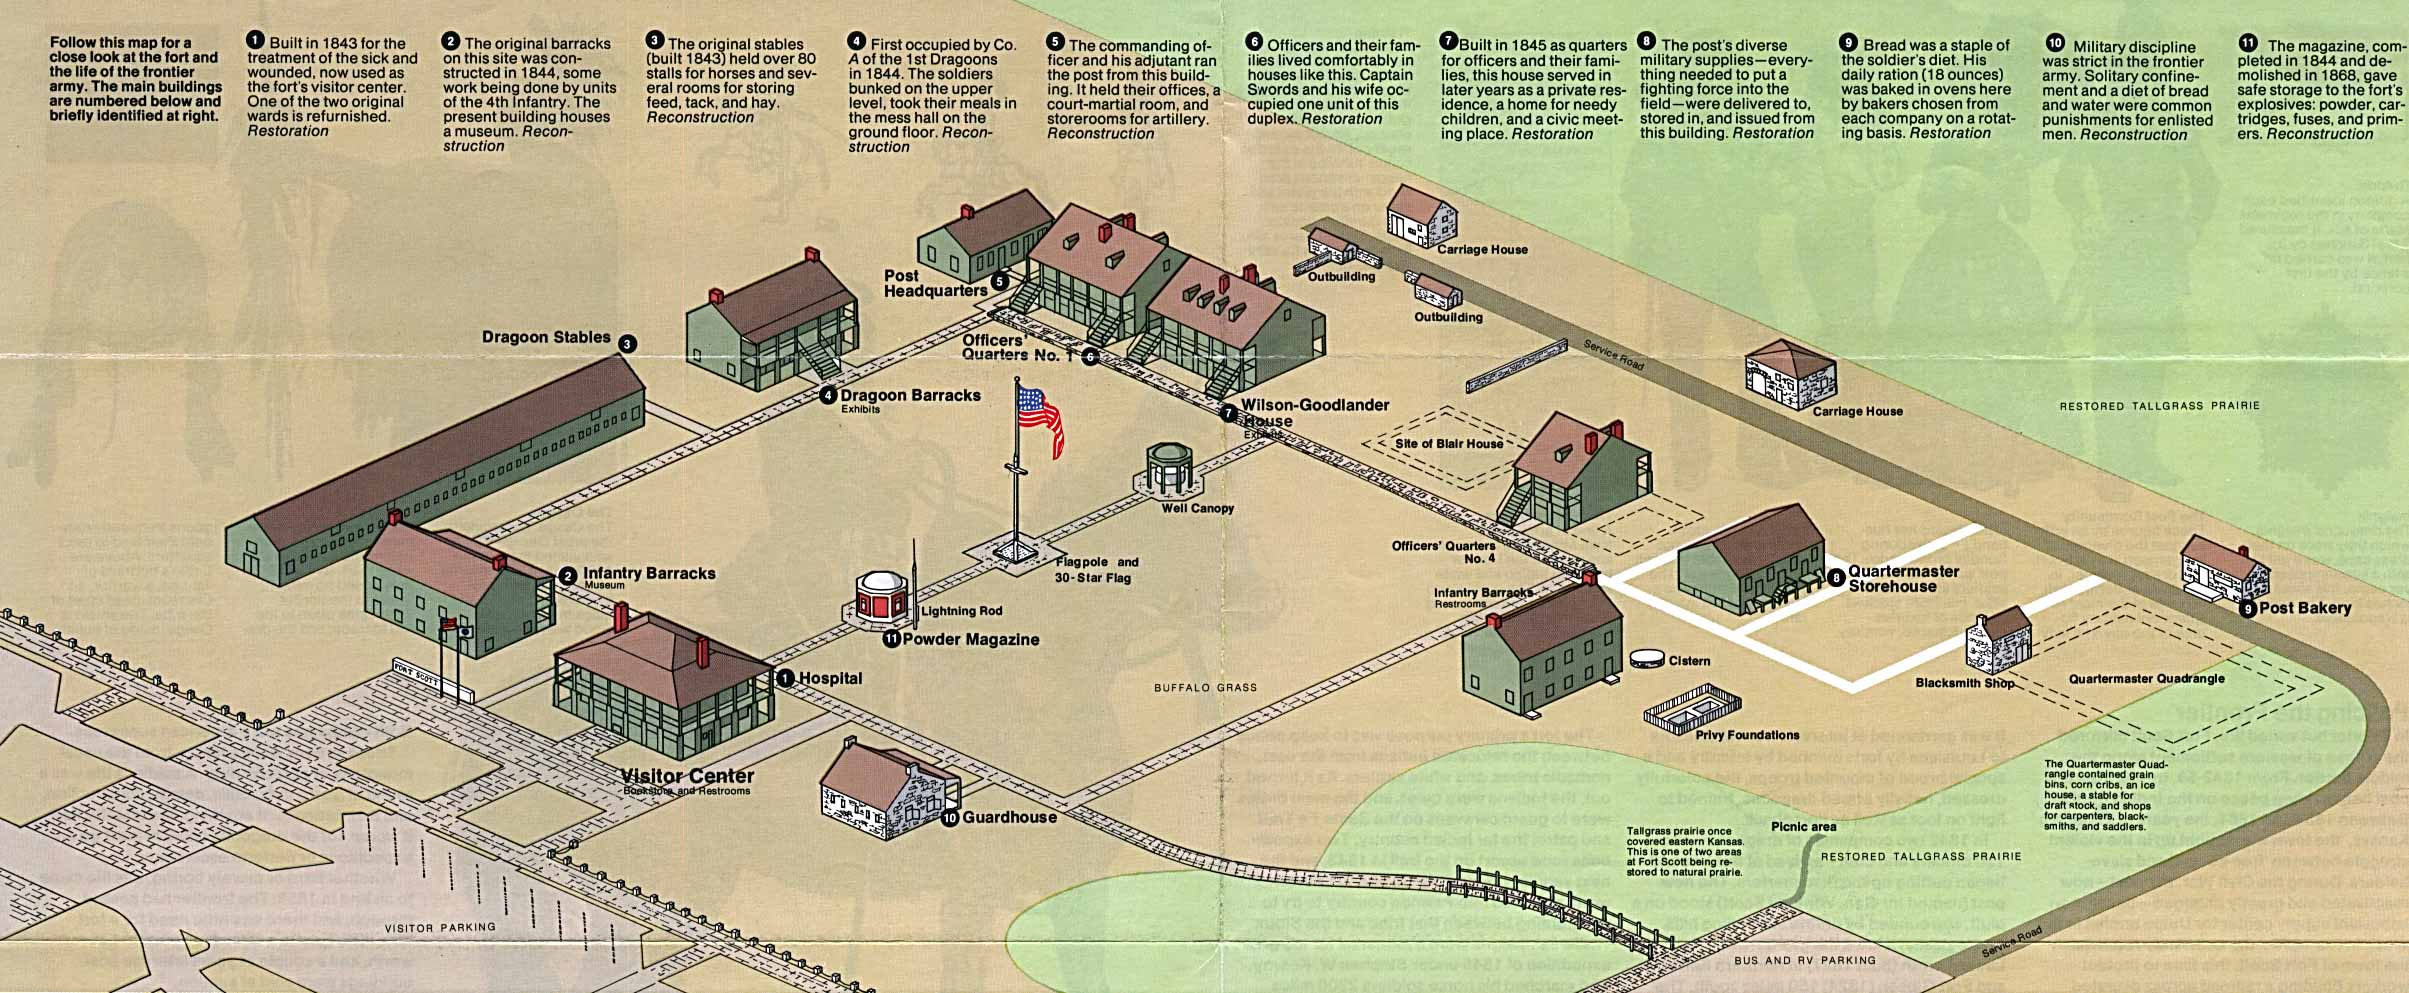 Larned (KS) United States  city photos : Fort Scott National Historic Site Schematic Map, Kansas, United States